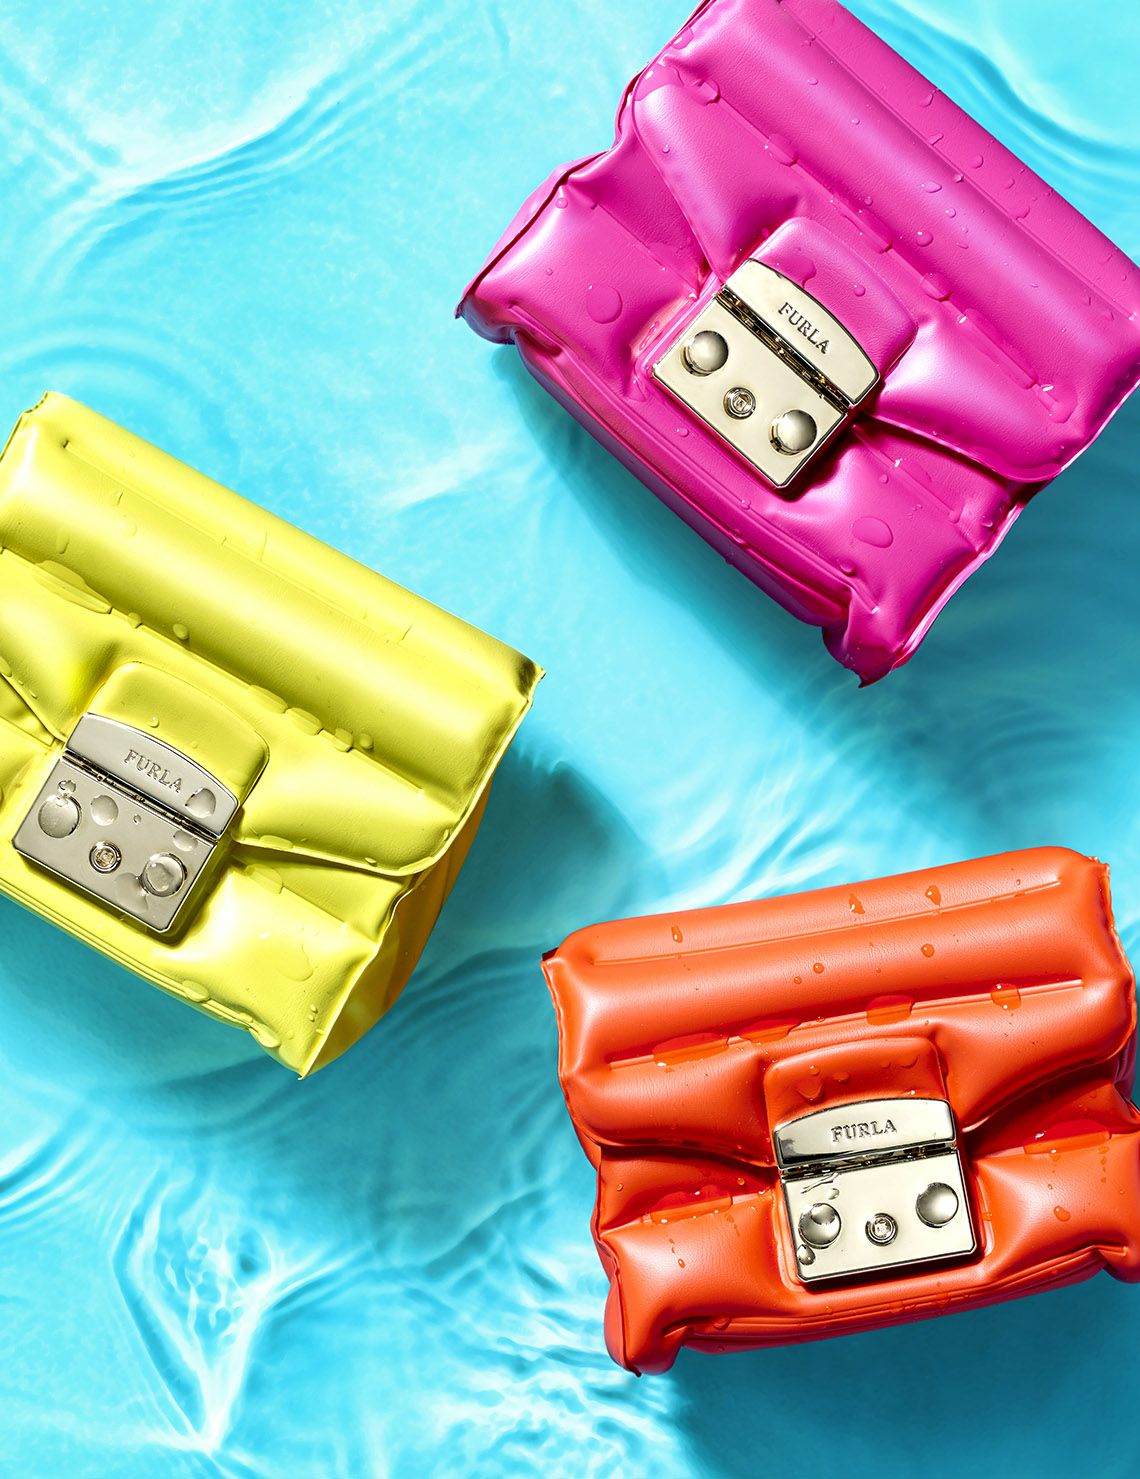 Furla Floatie Bag